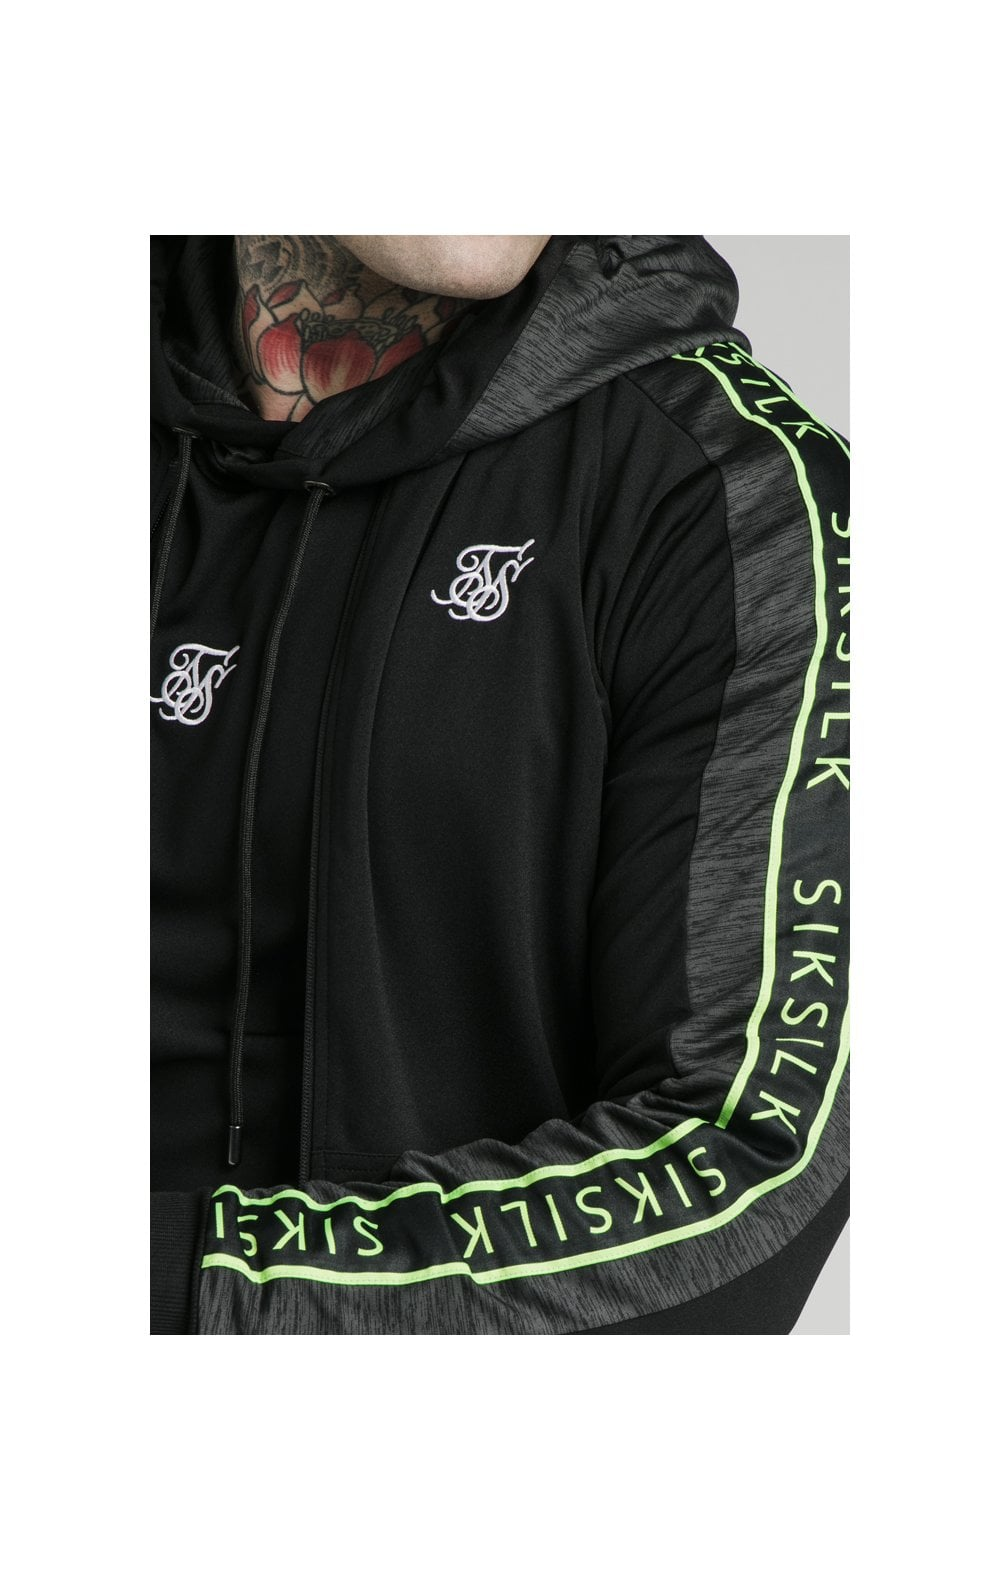 SikSilk Hyper Tape Bomber Jacket - Black & Neon Fluro (5)